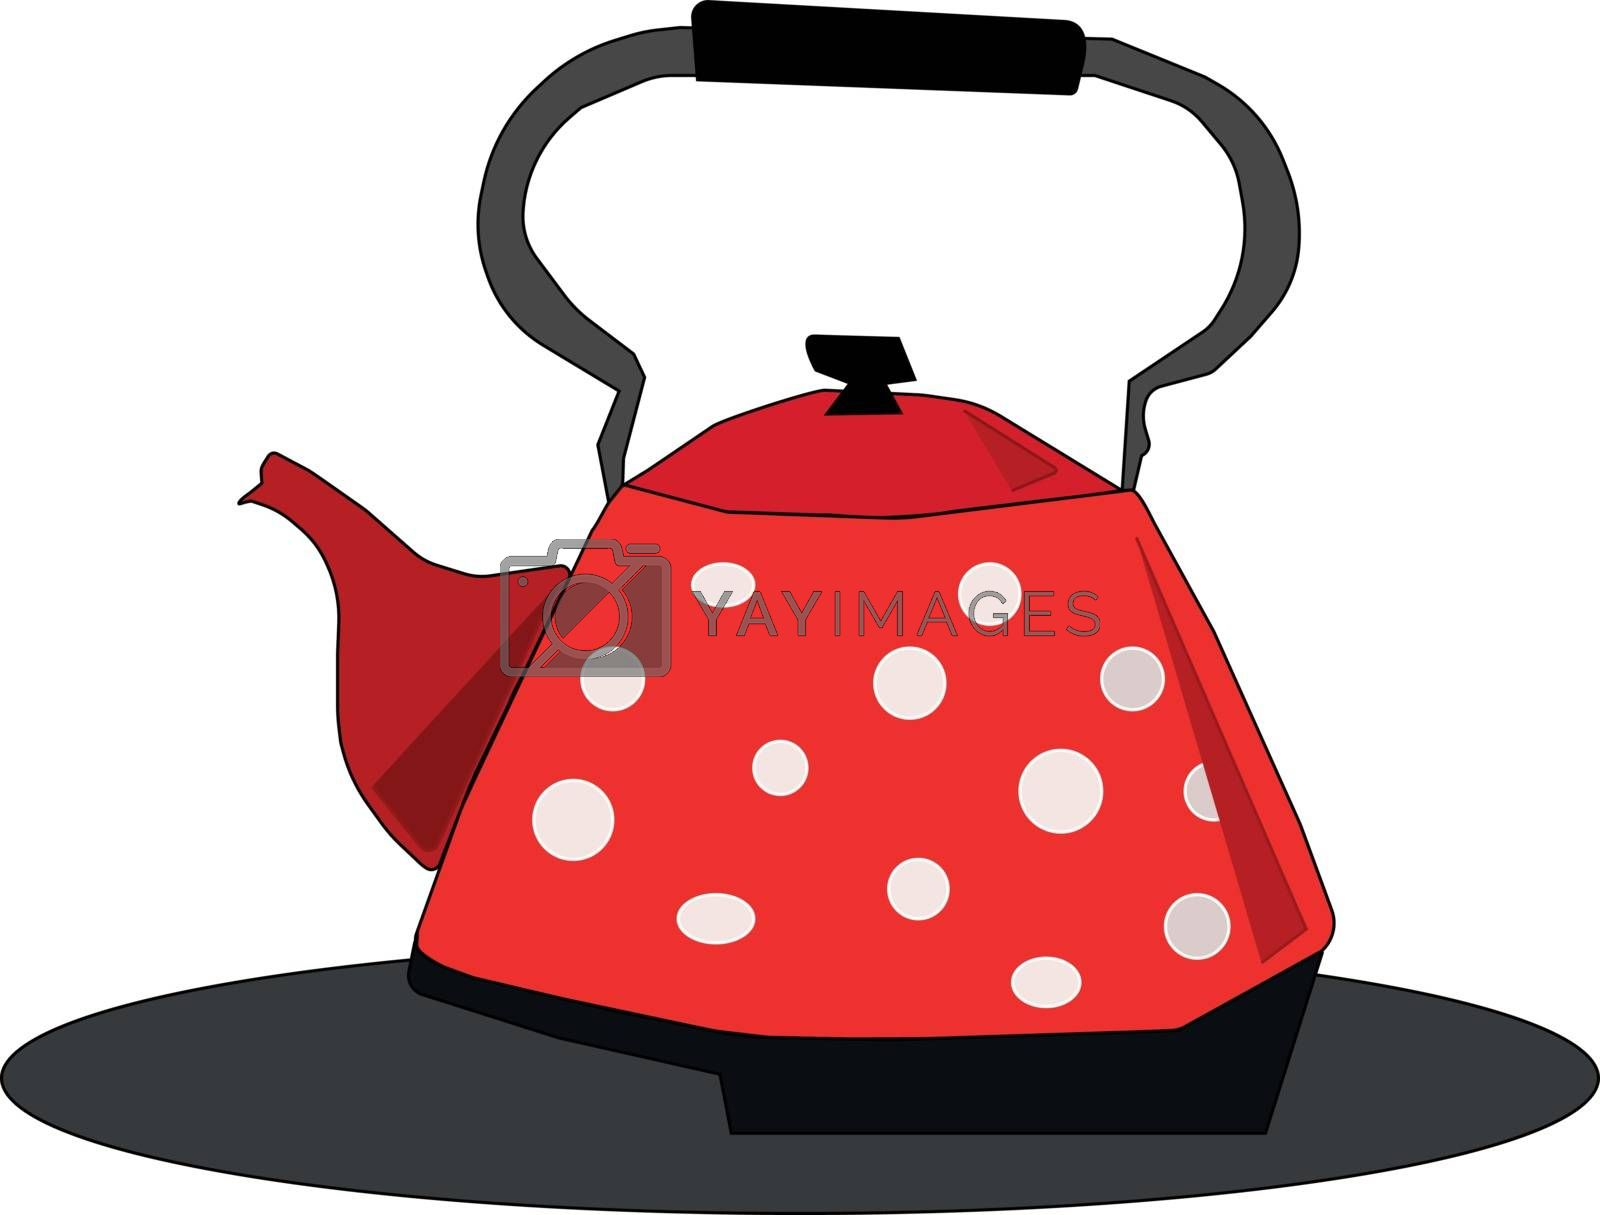 Royalty free image of Clipart of a red kettle/Teapot/Evening snacks time vector or col by Morphart